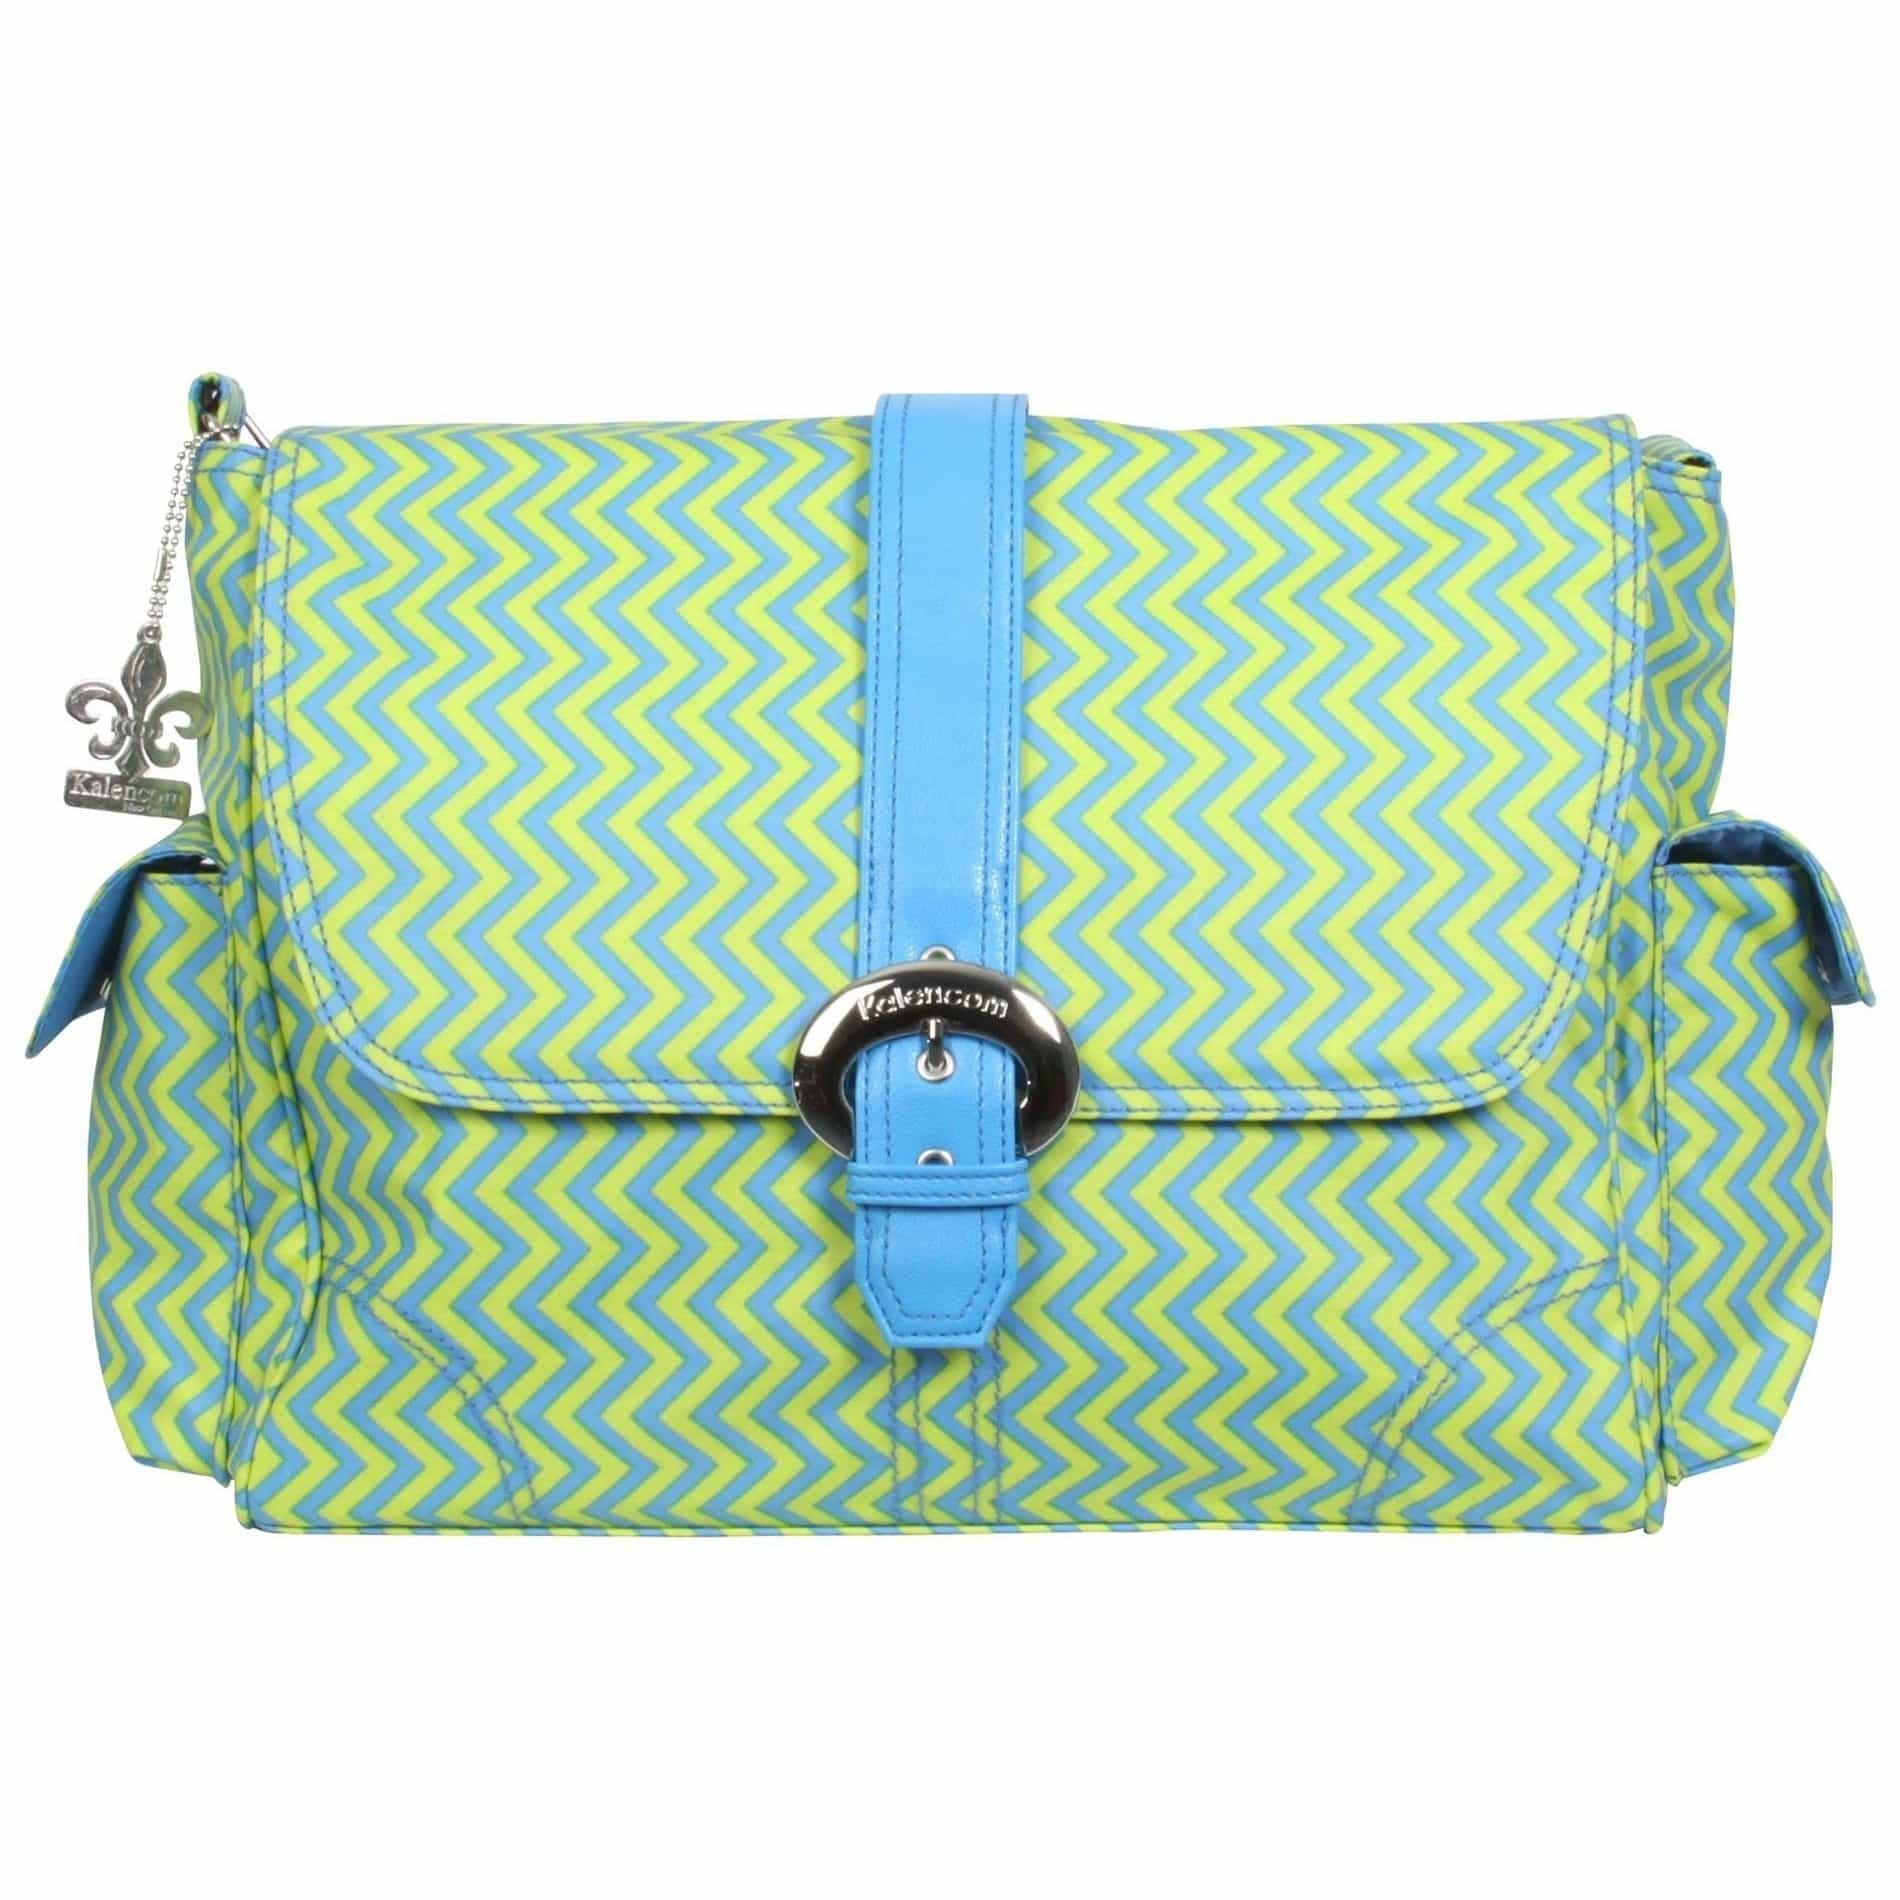 Wiggly Stripes - Beach Matte Coated Buckle Diaper Bag | Style 2960 - Kalencom-Diaper Bags-Default-Jack and Jill Boutique